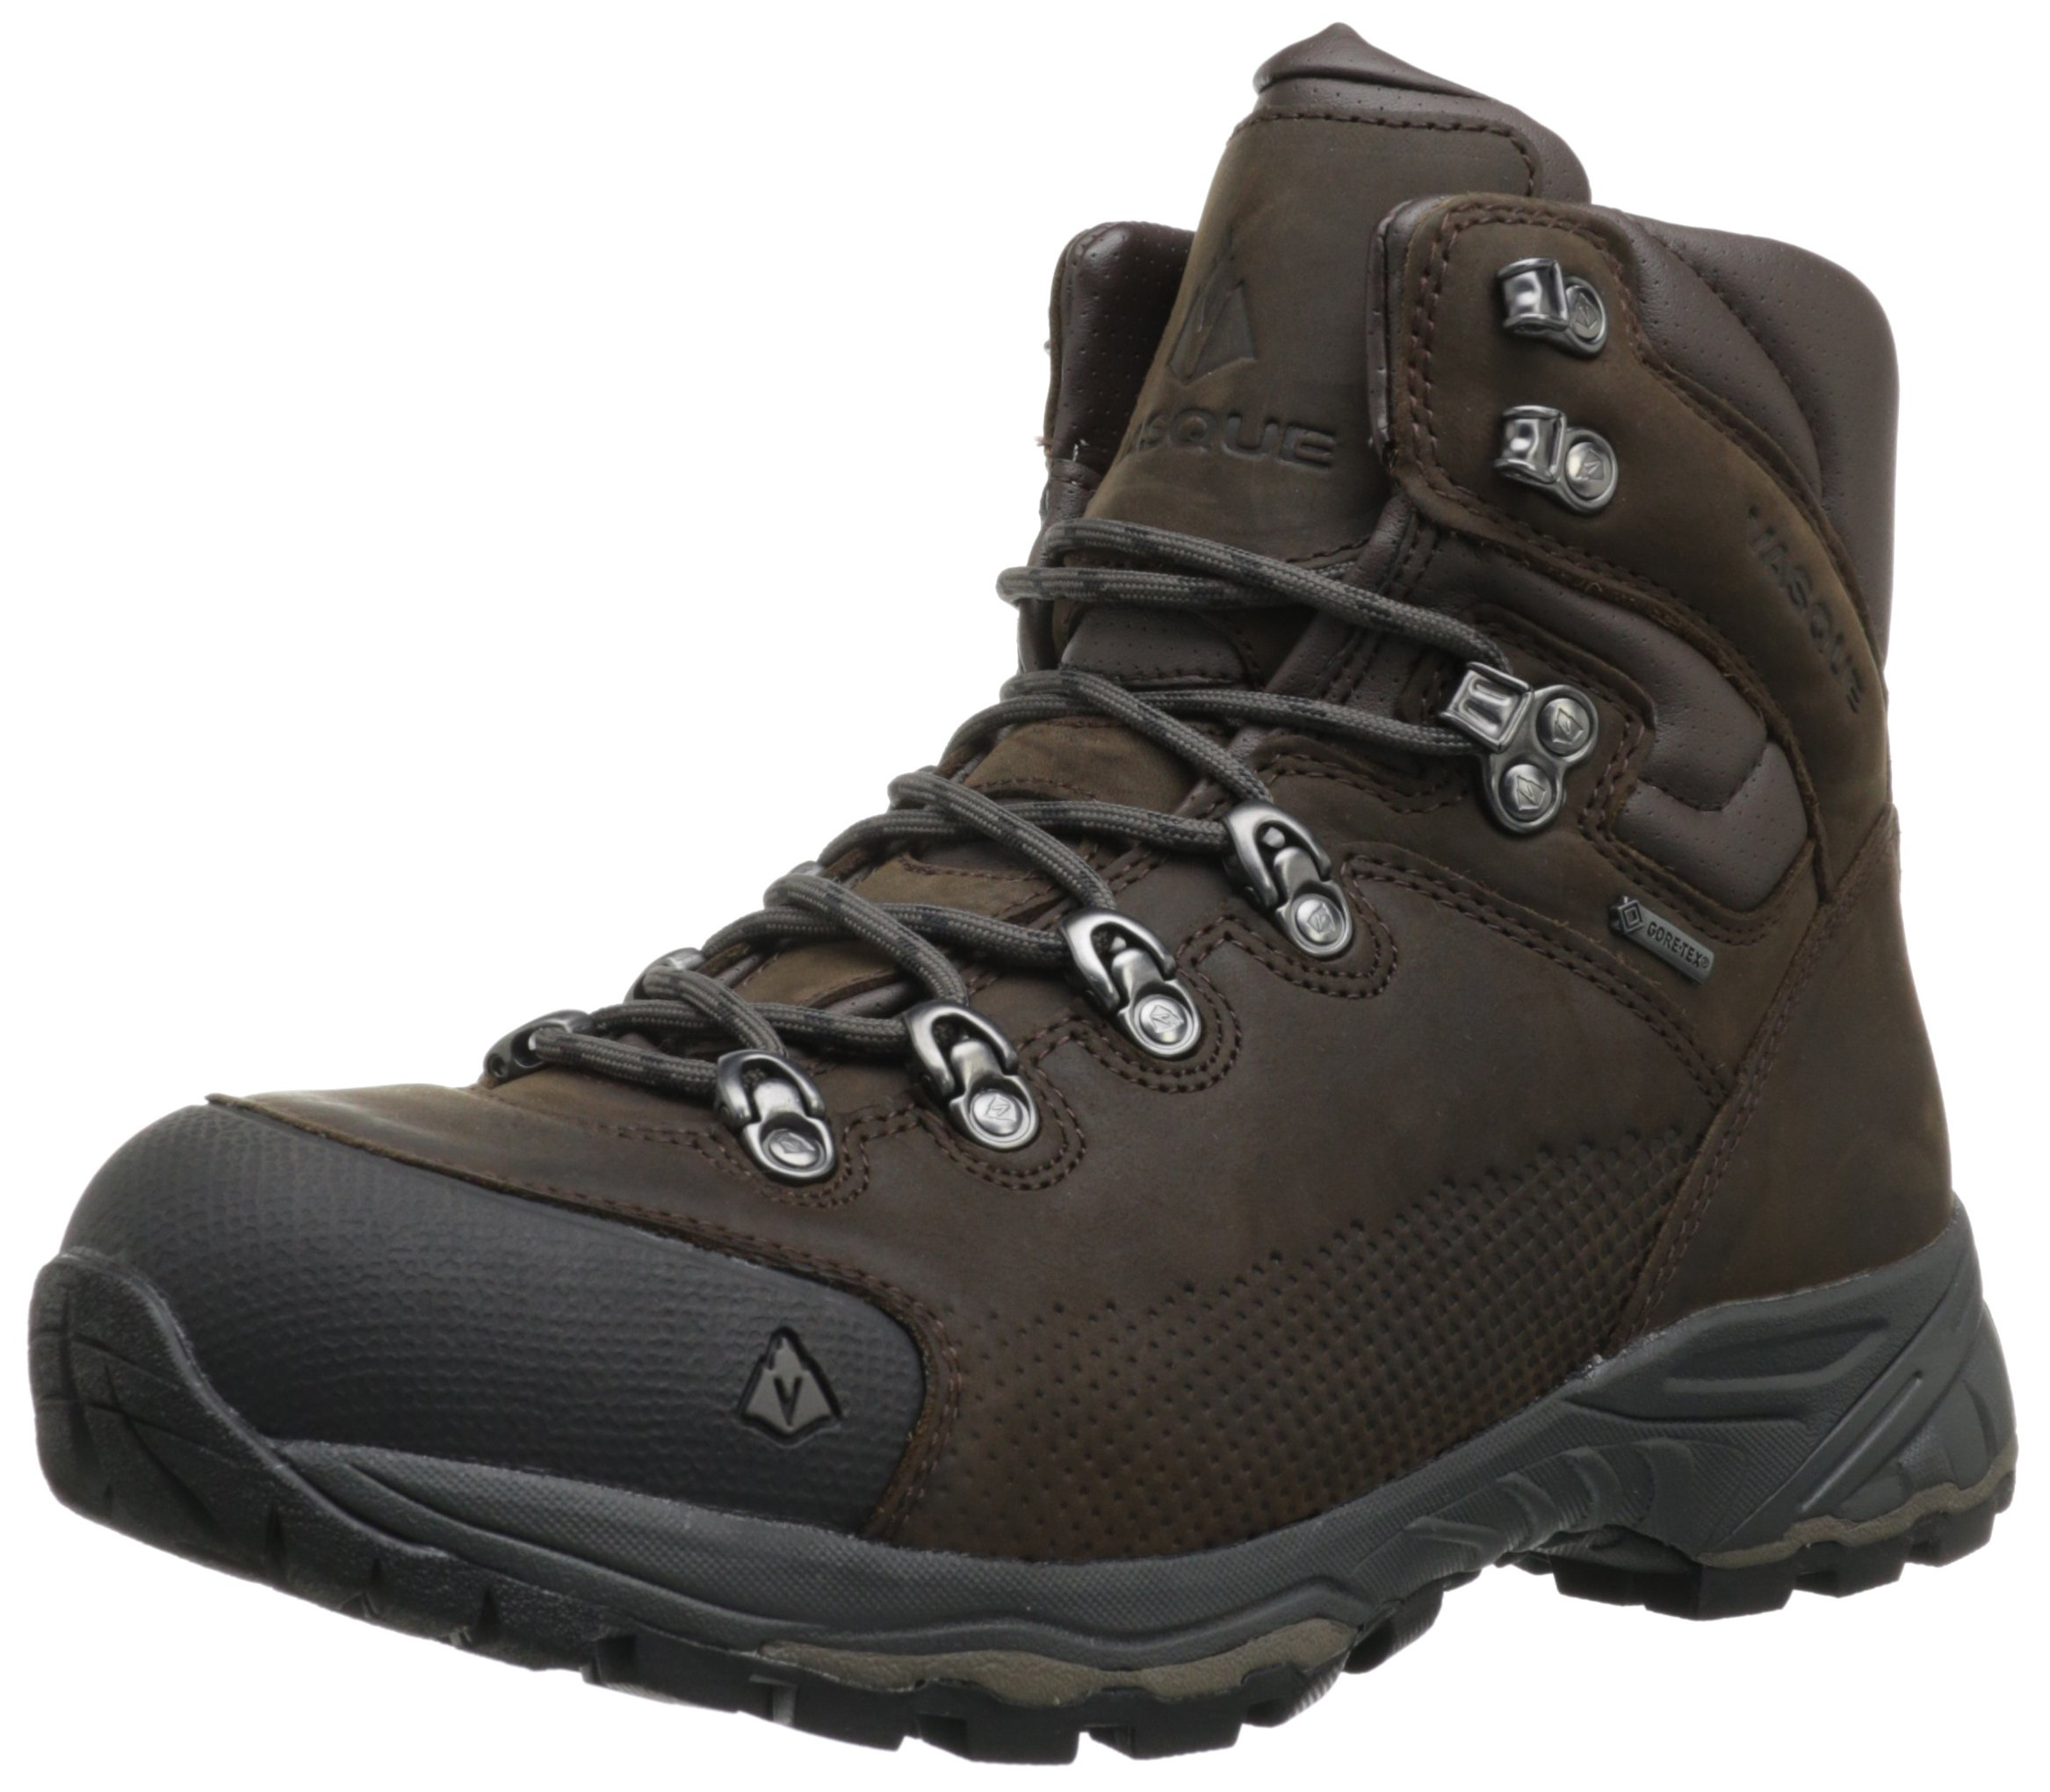 vasque men 39 s st elias gore tex backpacking boot slate brown beluga 10 5 m us. Black Bedroom Furniture Sets. Home Design Ideas